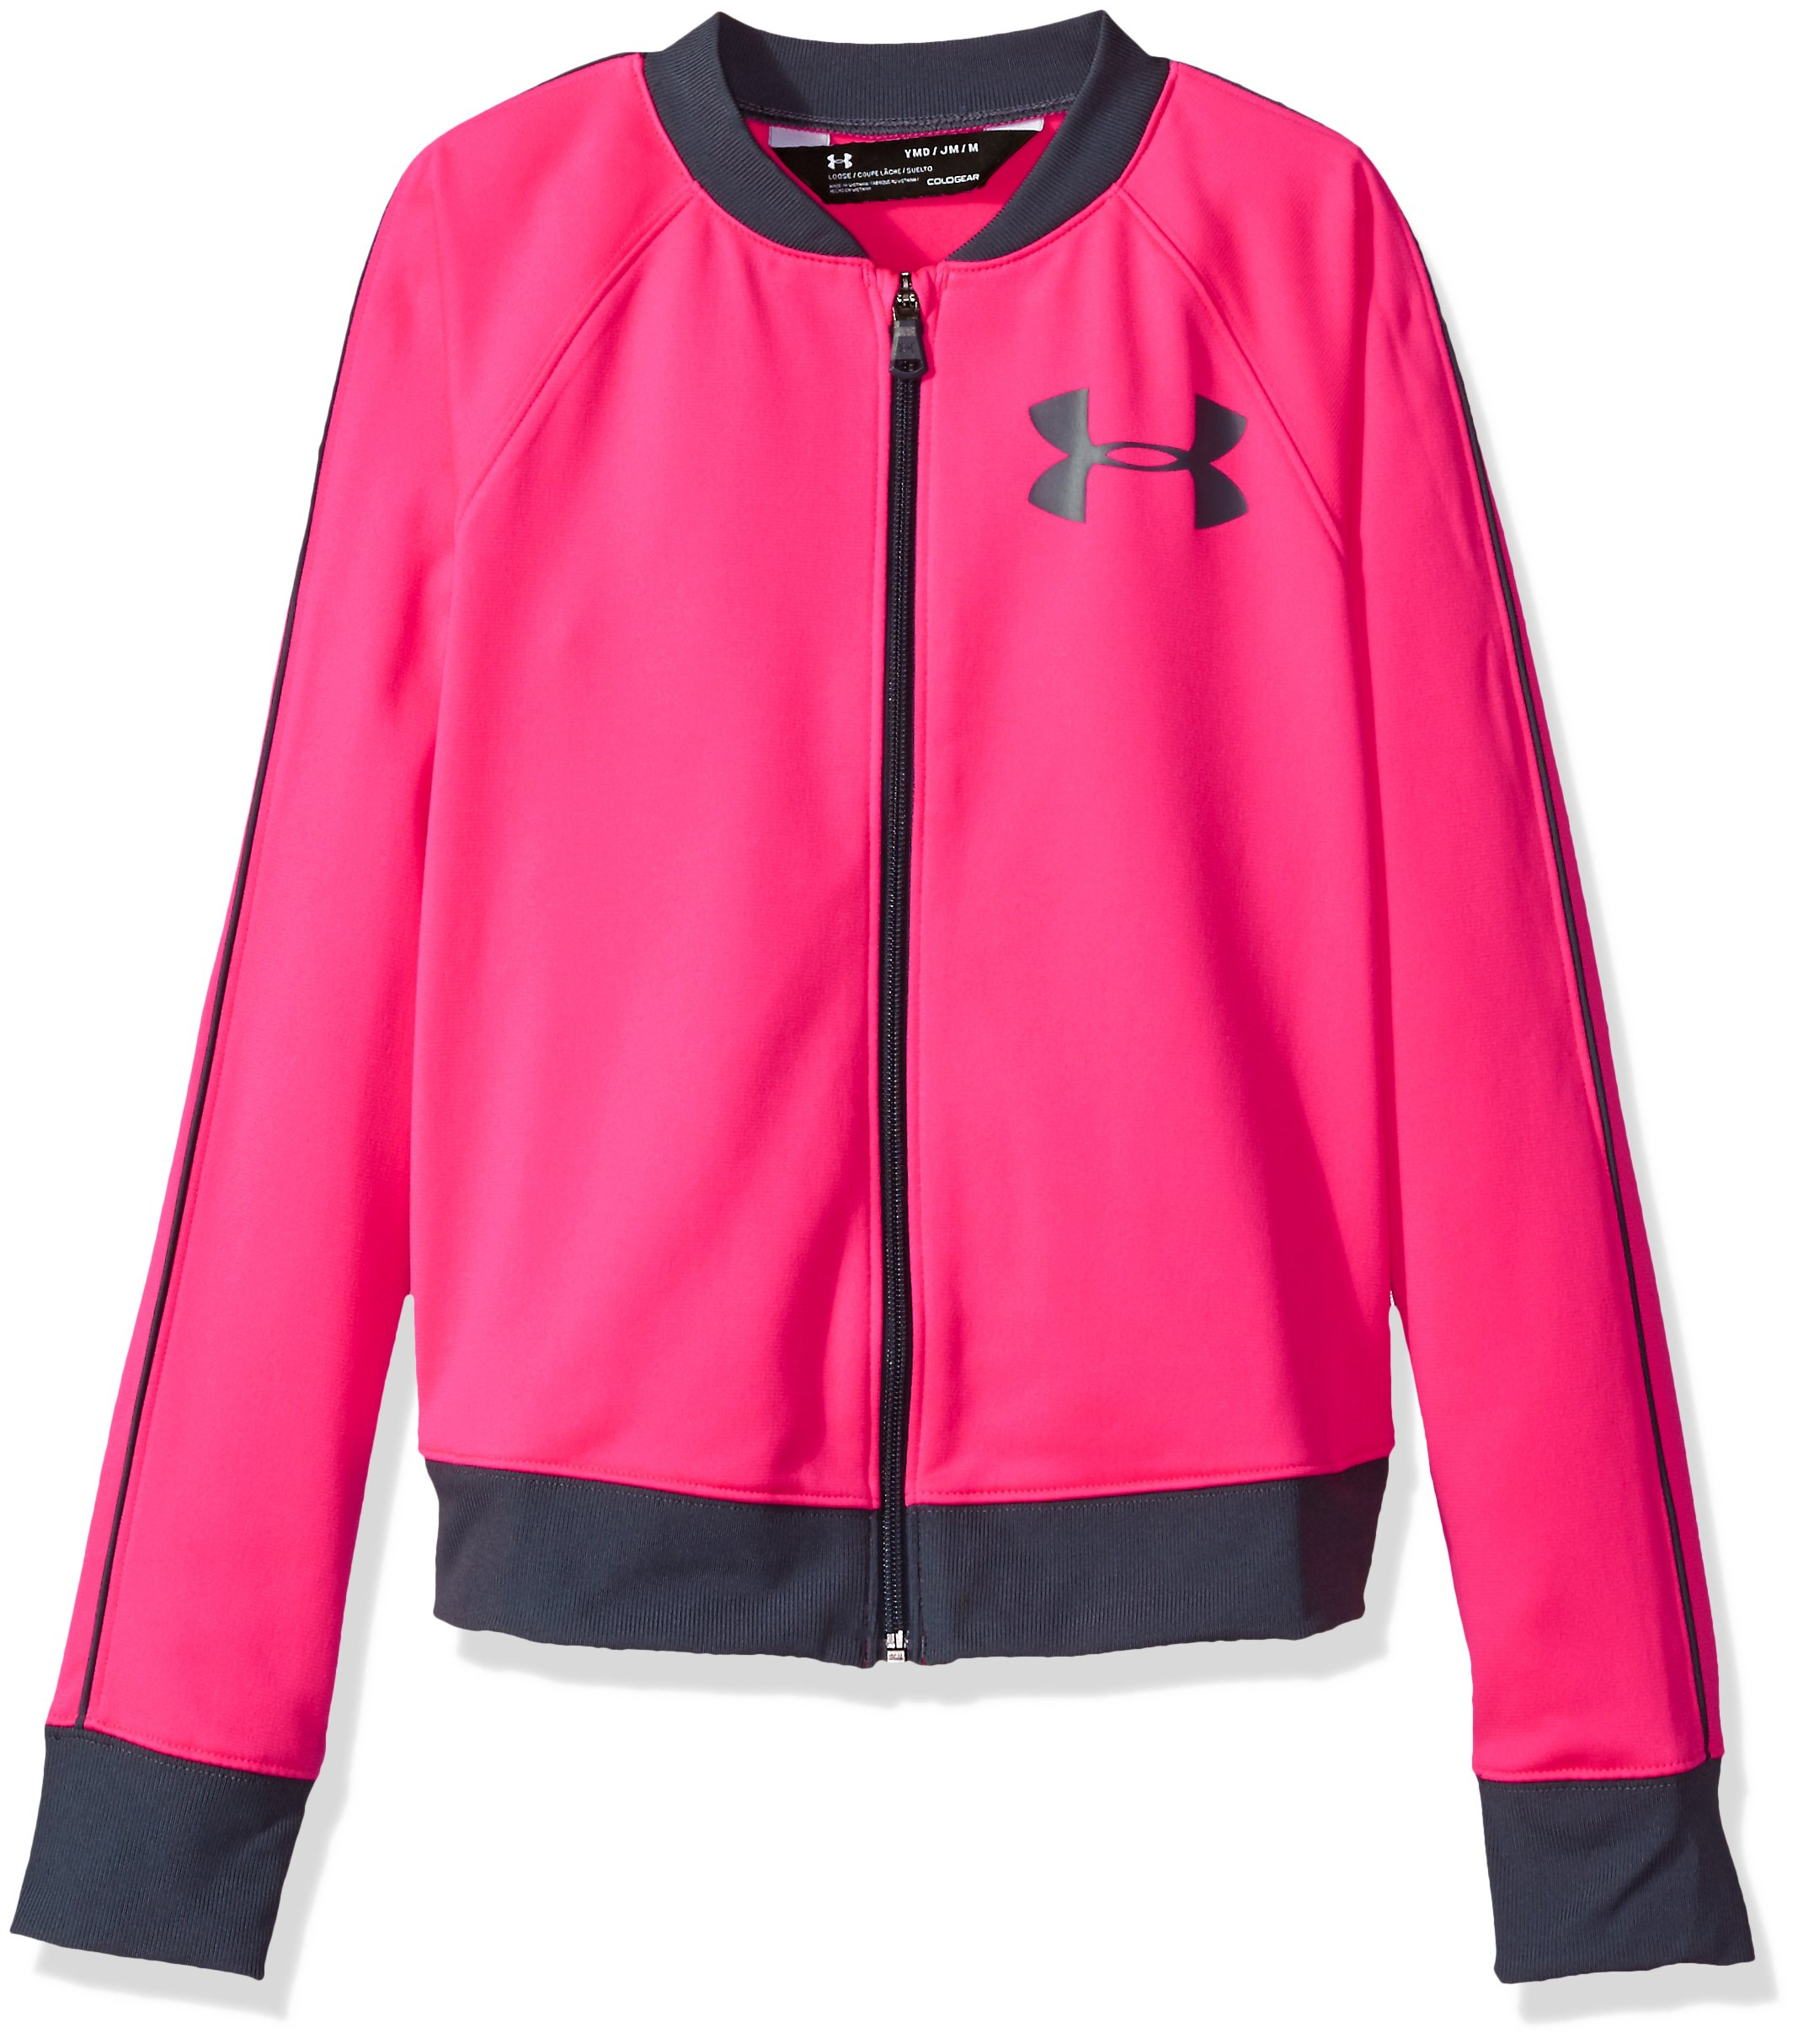 Under Armour Girls' Track Jacket,Penta Pink (975)/Apollo Gray, Youth X-Large by Under Armour